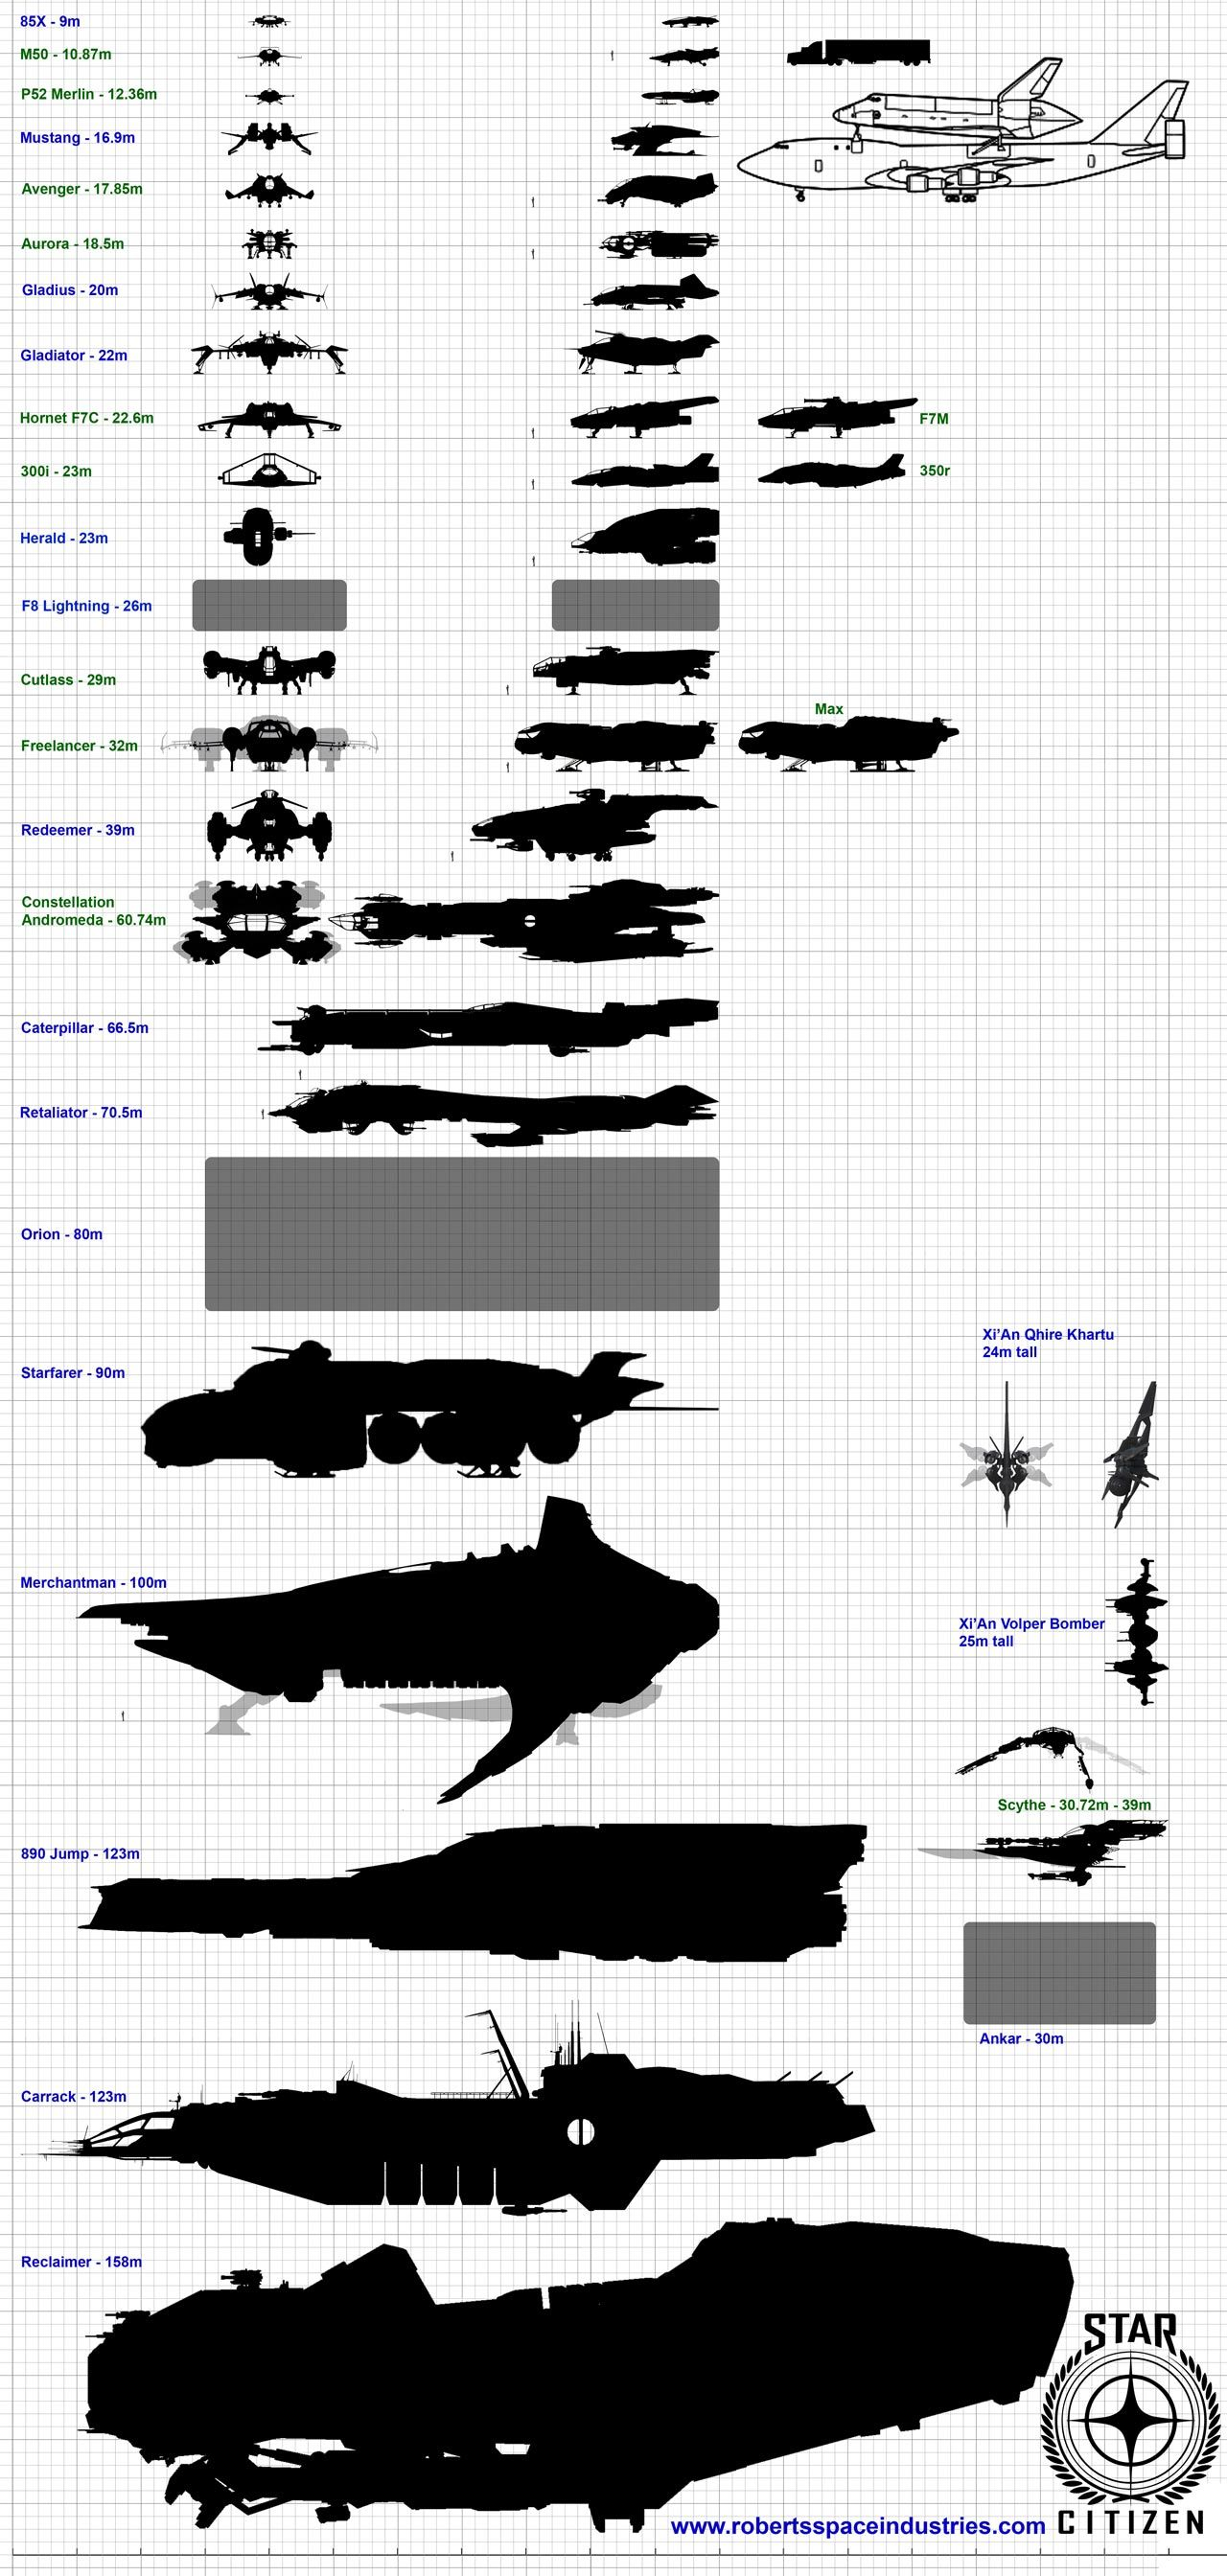 hight resolution of ship size comparison 1280 2688 to the sky pinterestship size comparison 1280